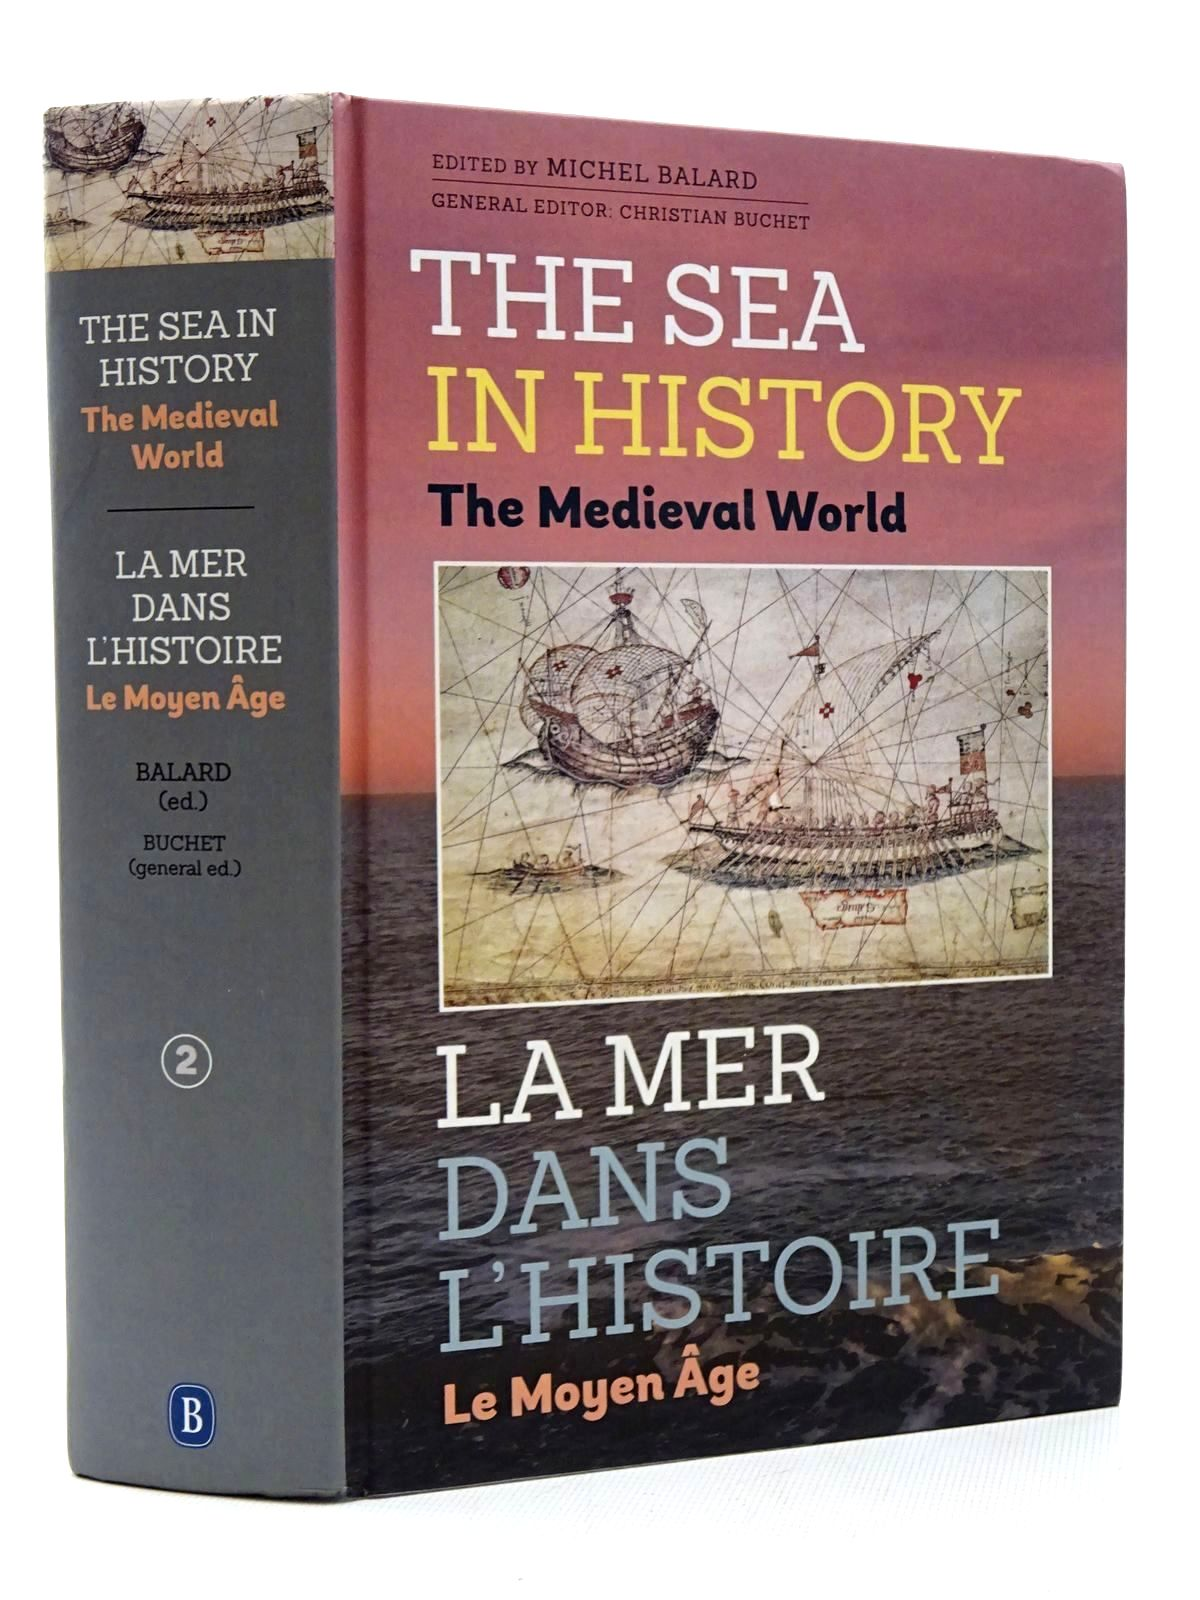 Photo of THE SEA IN HISTORY THE MEDIEVAL WORLD LA MER DANS L'HISTOIRE LE MOYEN AGE written by Balard, Michel<br />Buchet, Christian published by The Boydell Press (STOCK CODE: 2124521)  for sale by Stella & Rose's Books